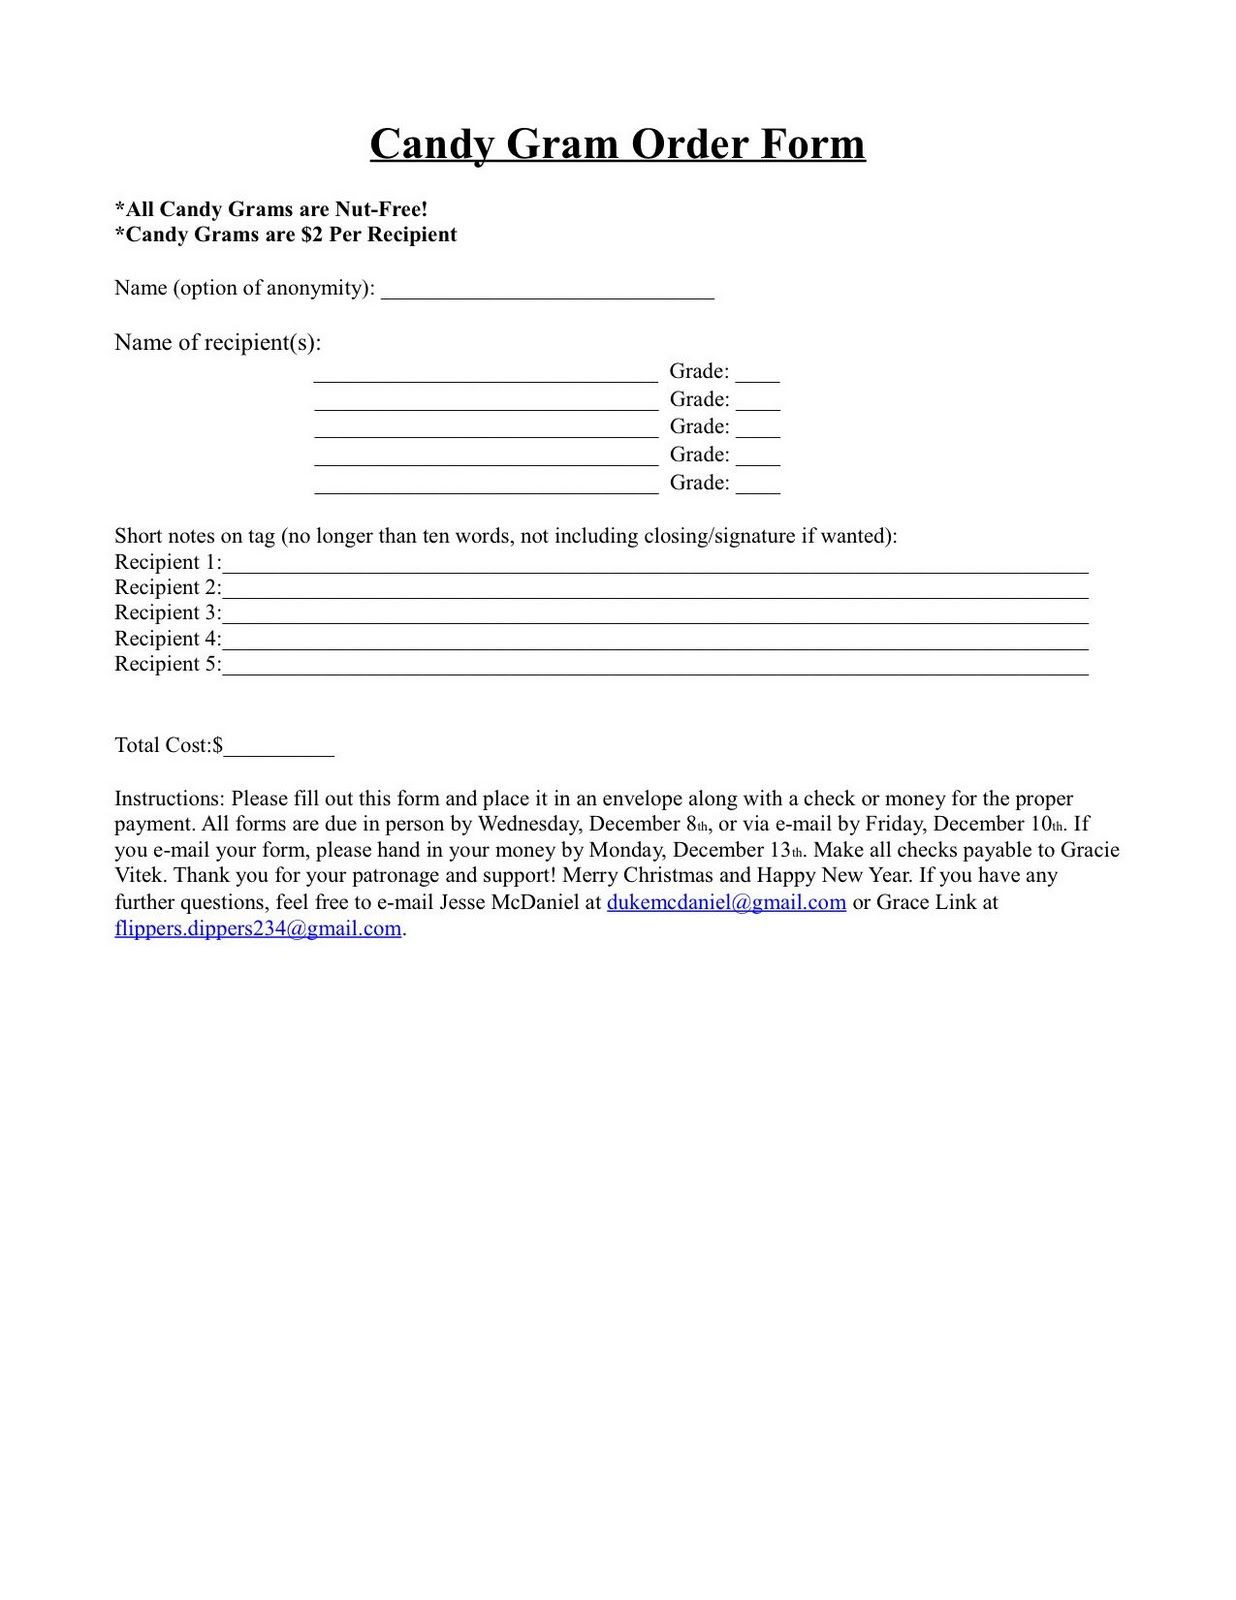 Christmas Candy Gram Template  halloween candy grams printable order form